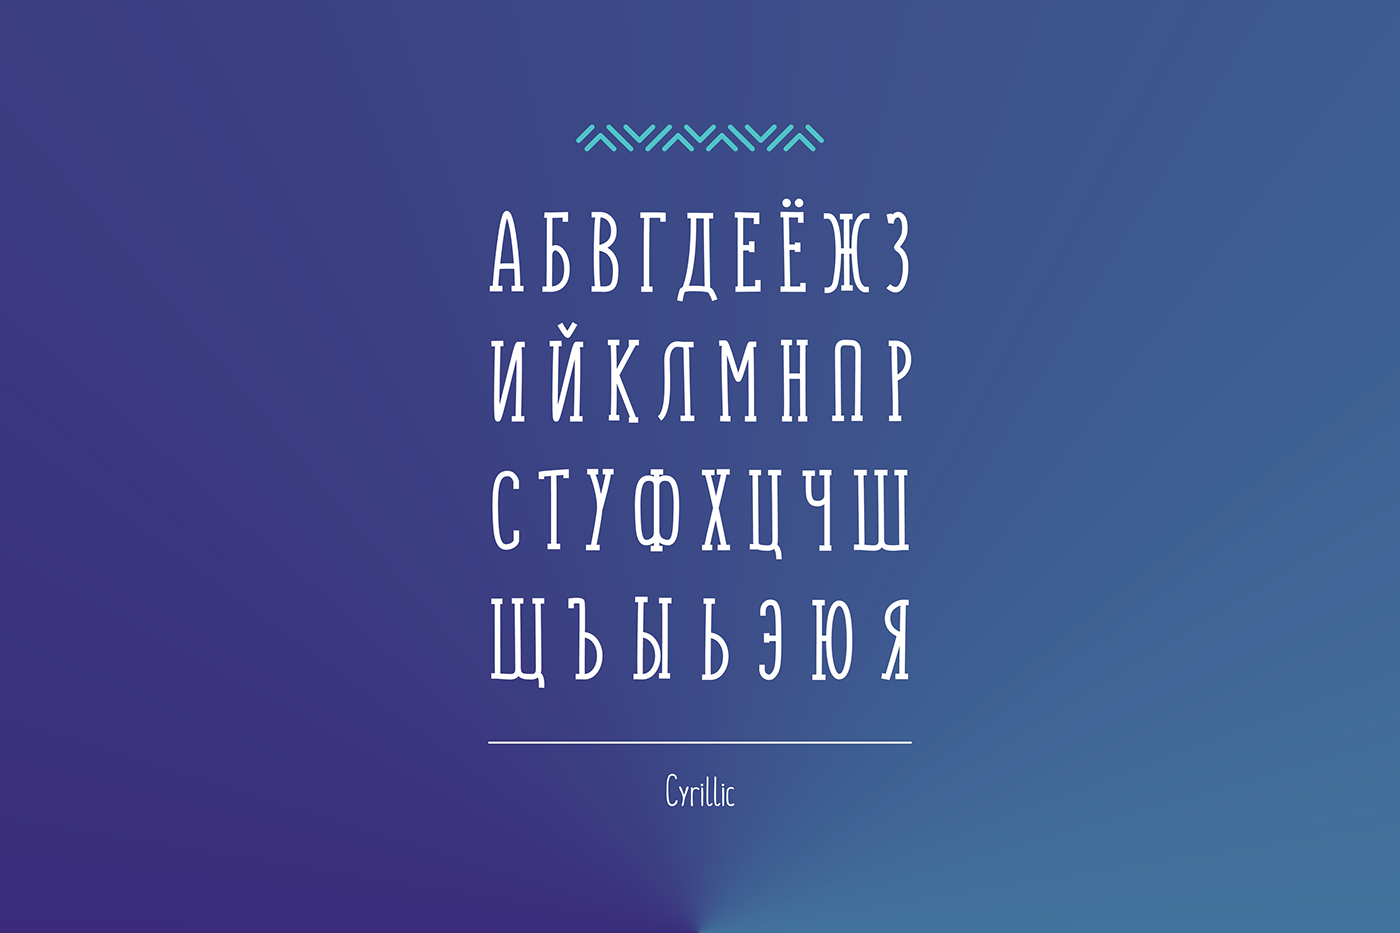 font freebie typography   Typeface Cyrillic handdrawing